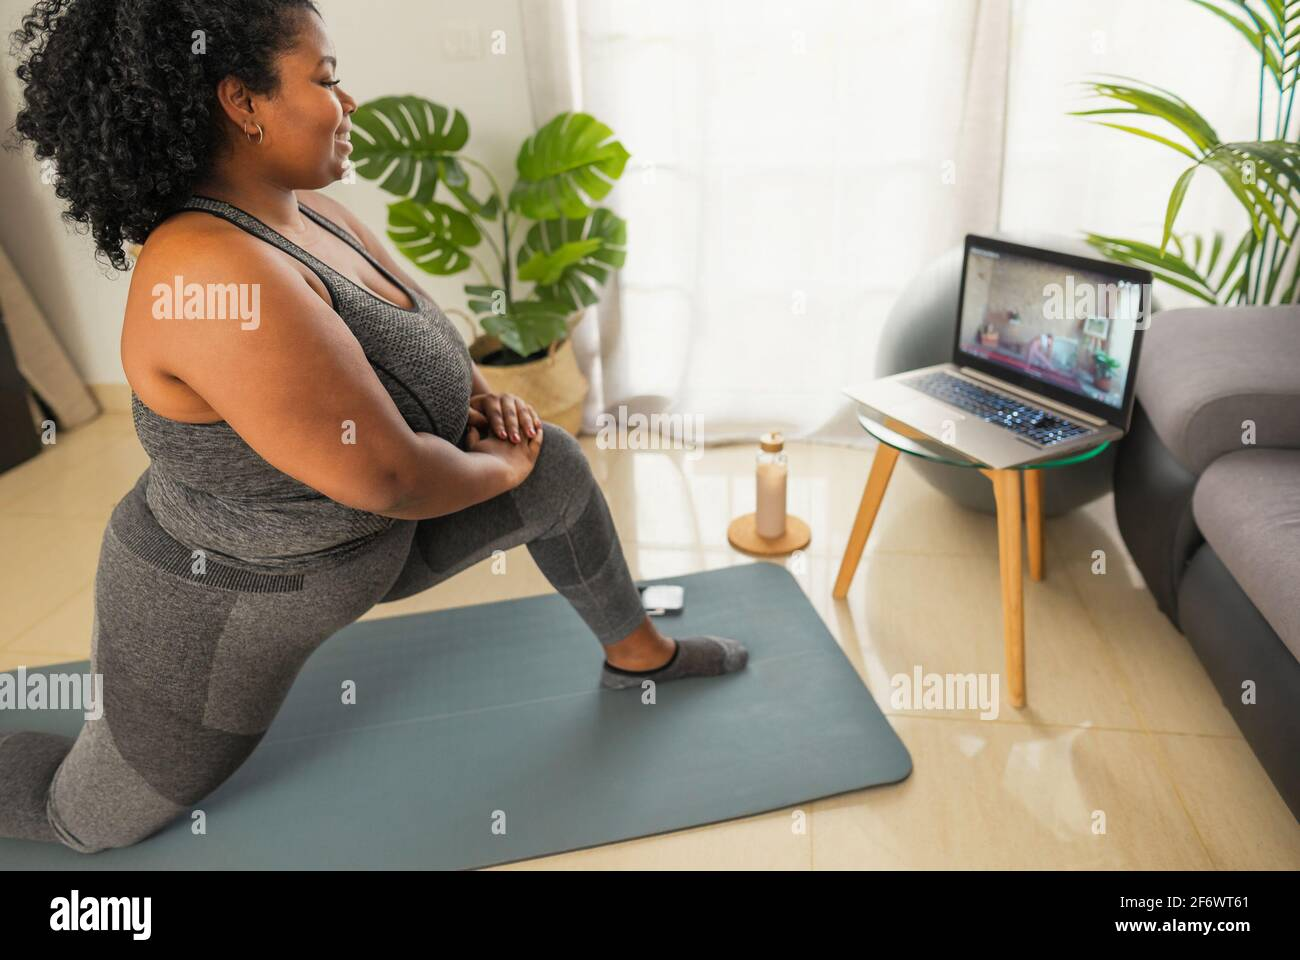 Young African woman doing pilates virtual fitness class with laptop at home - Sport wellness people lifestyle concept Stock Photo